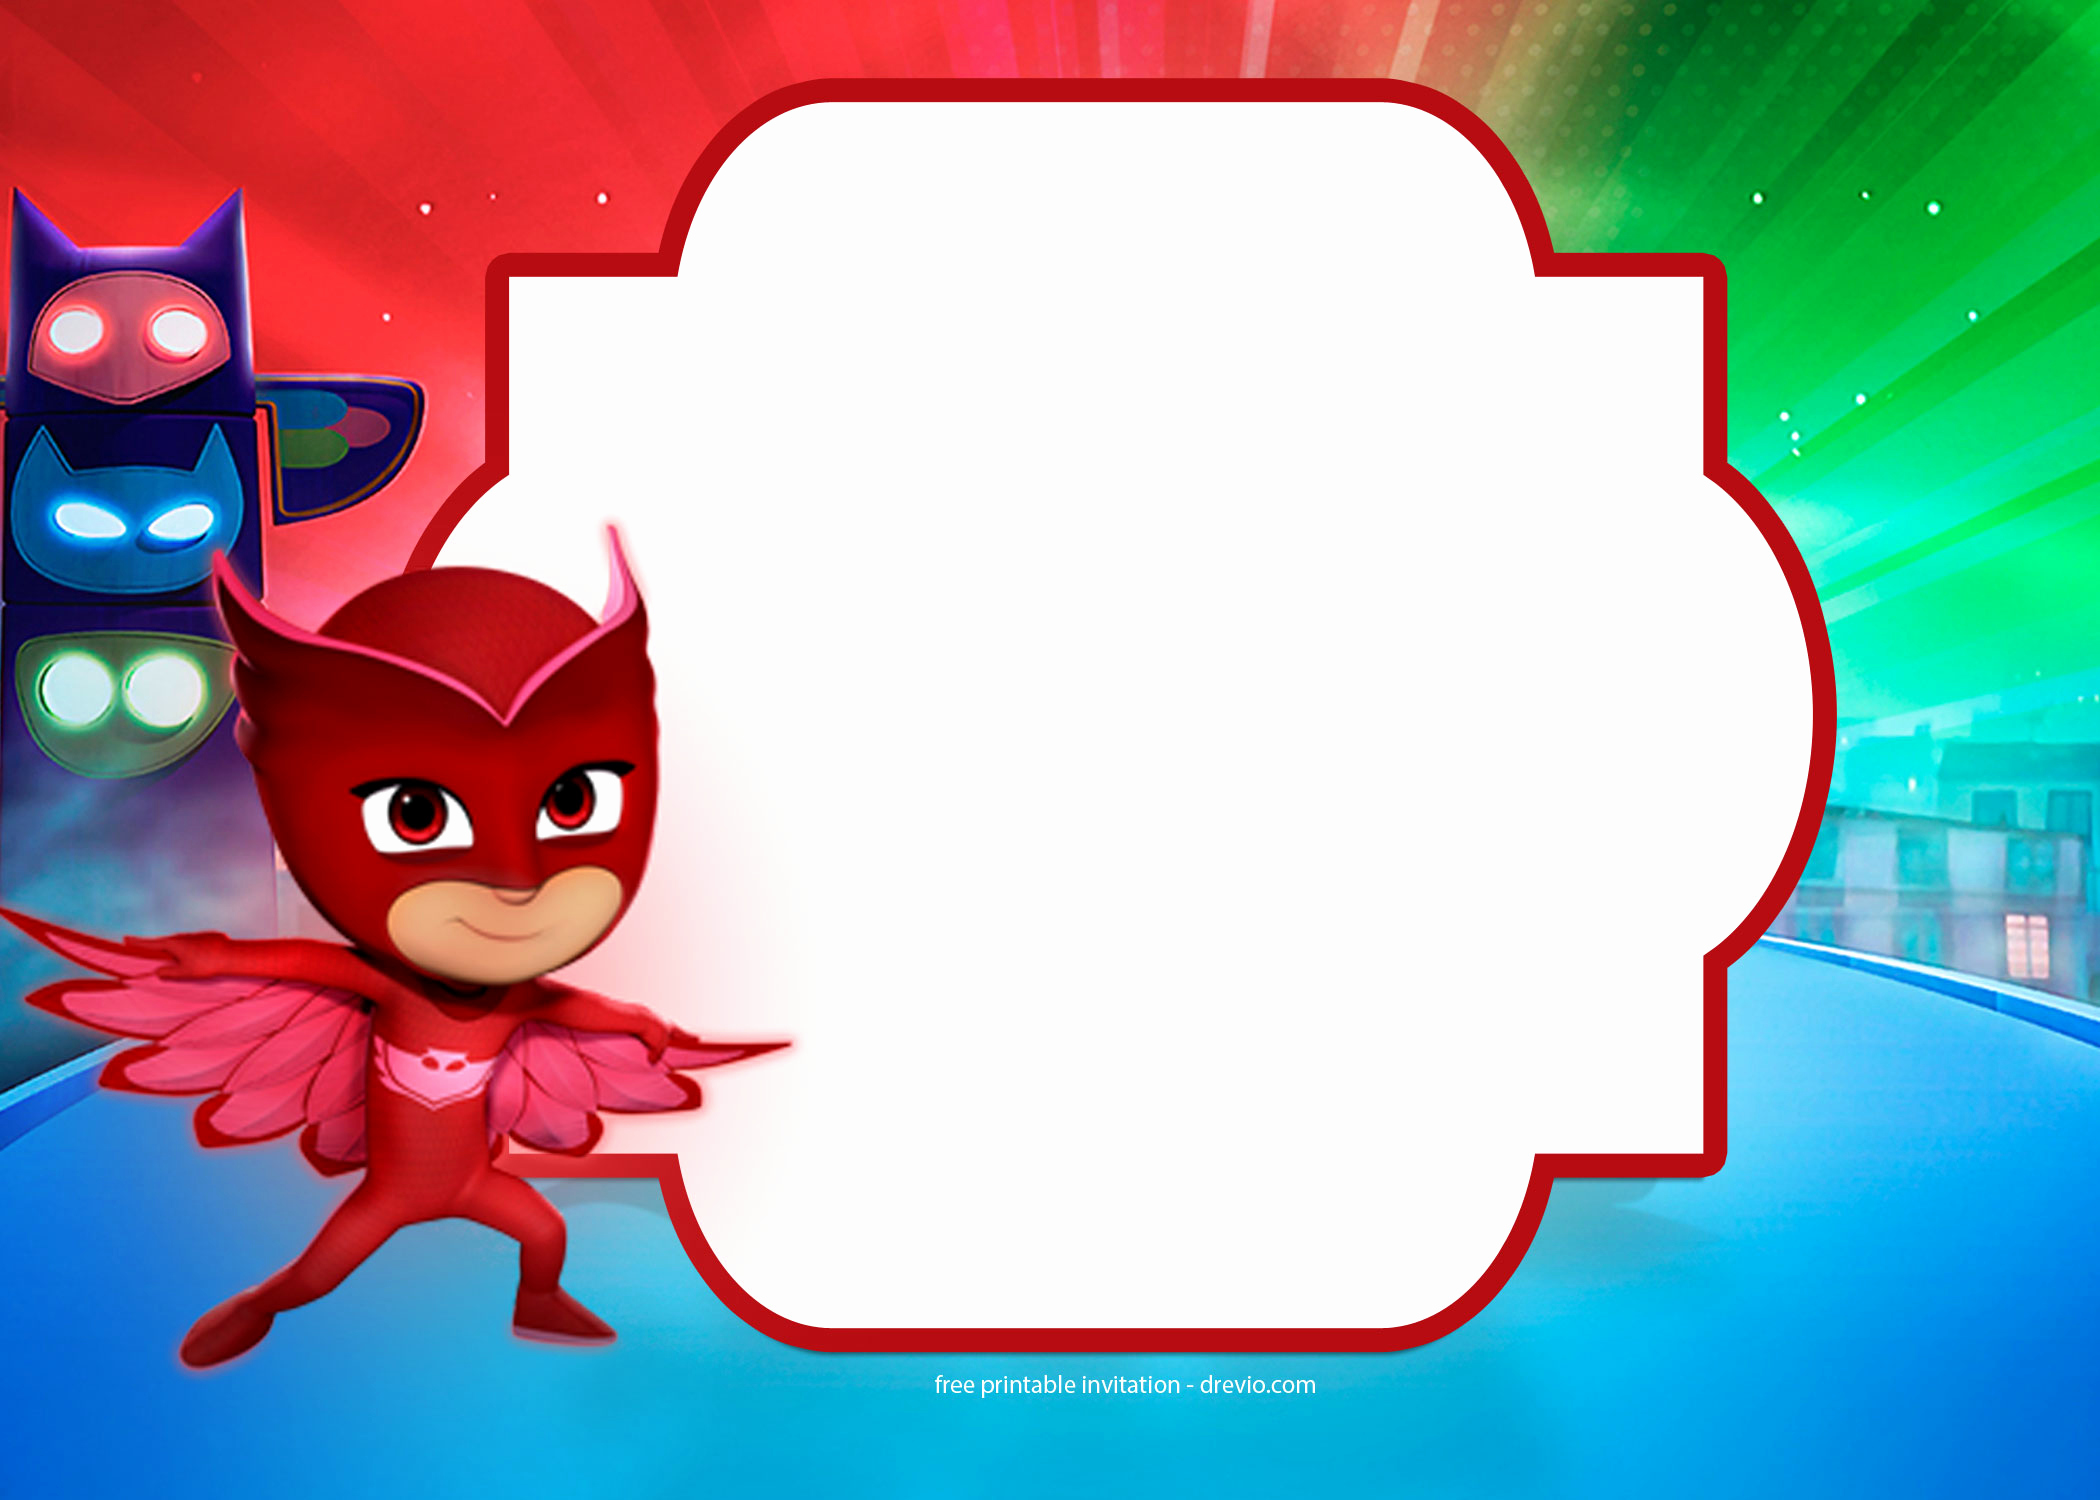 Pj Masks Invitation Template Free Luxury Free Pj Masks Birthday Invitation Templates